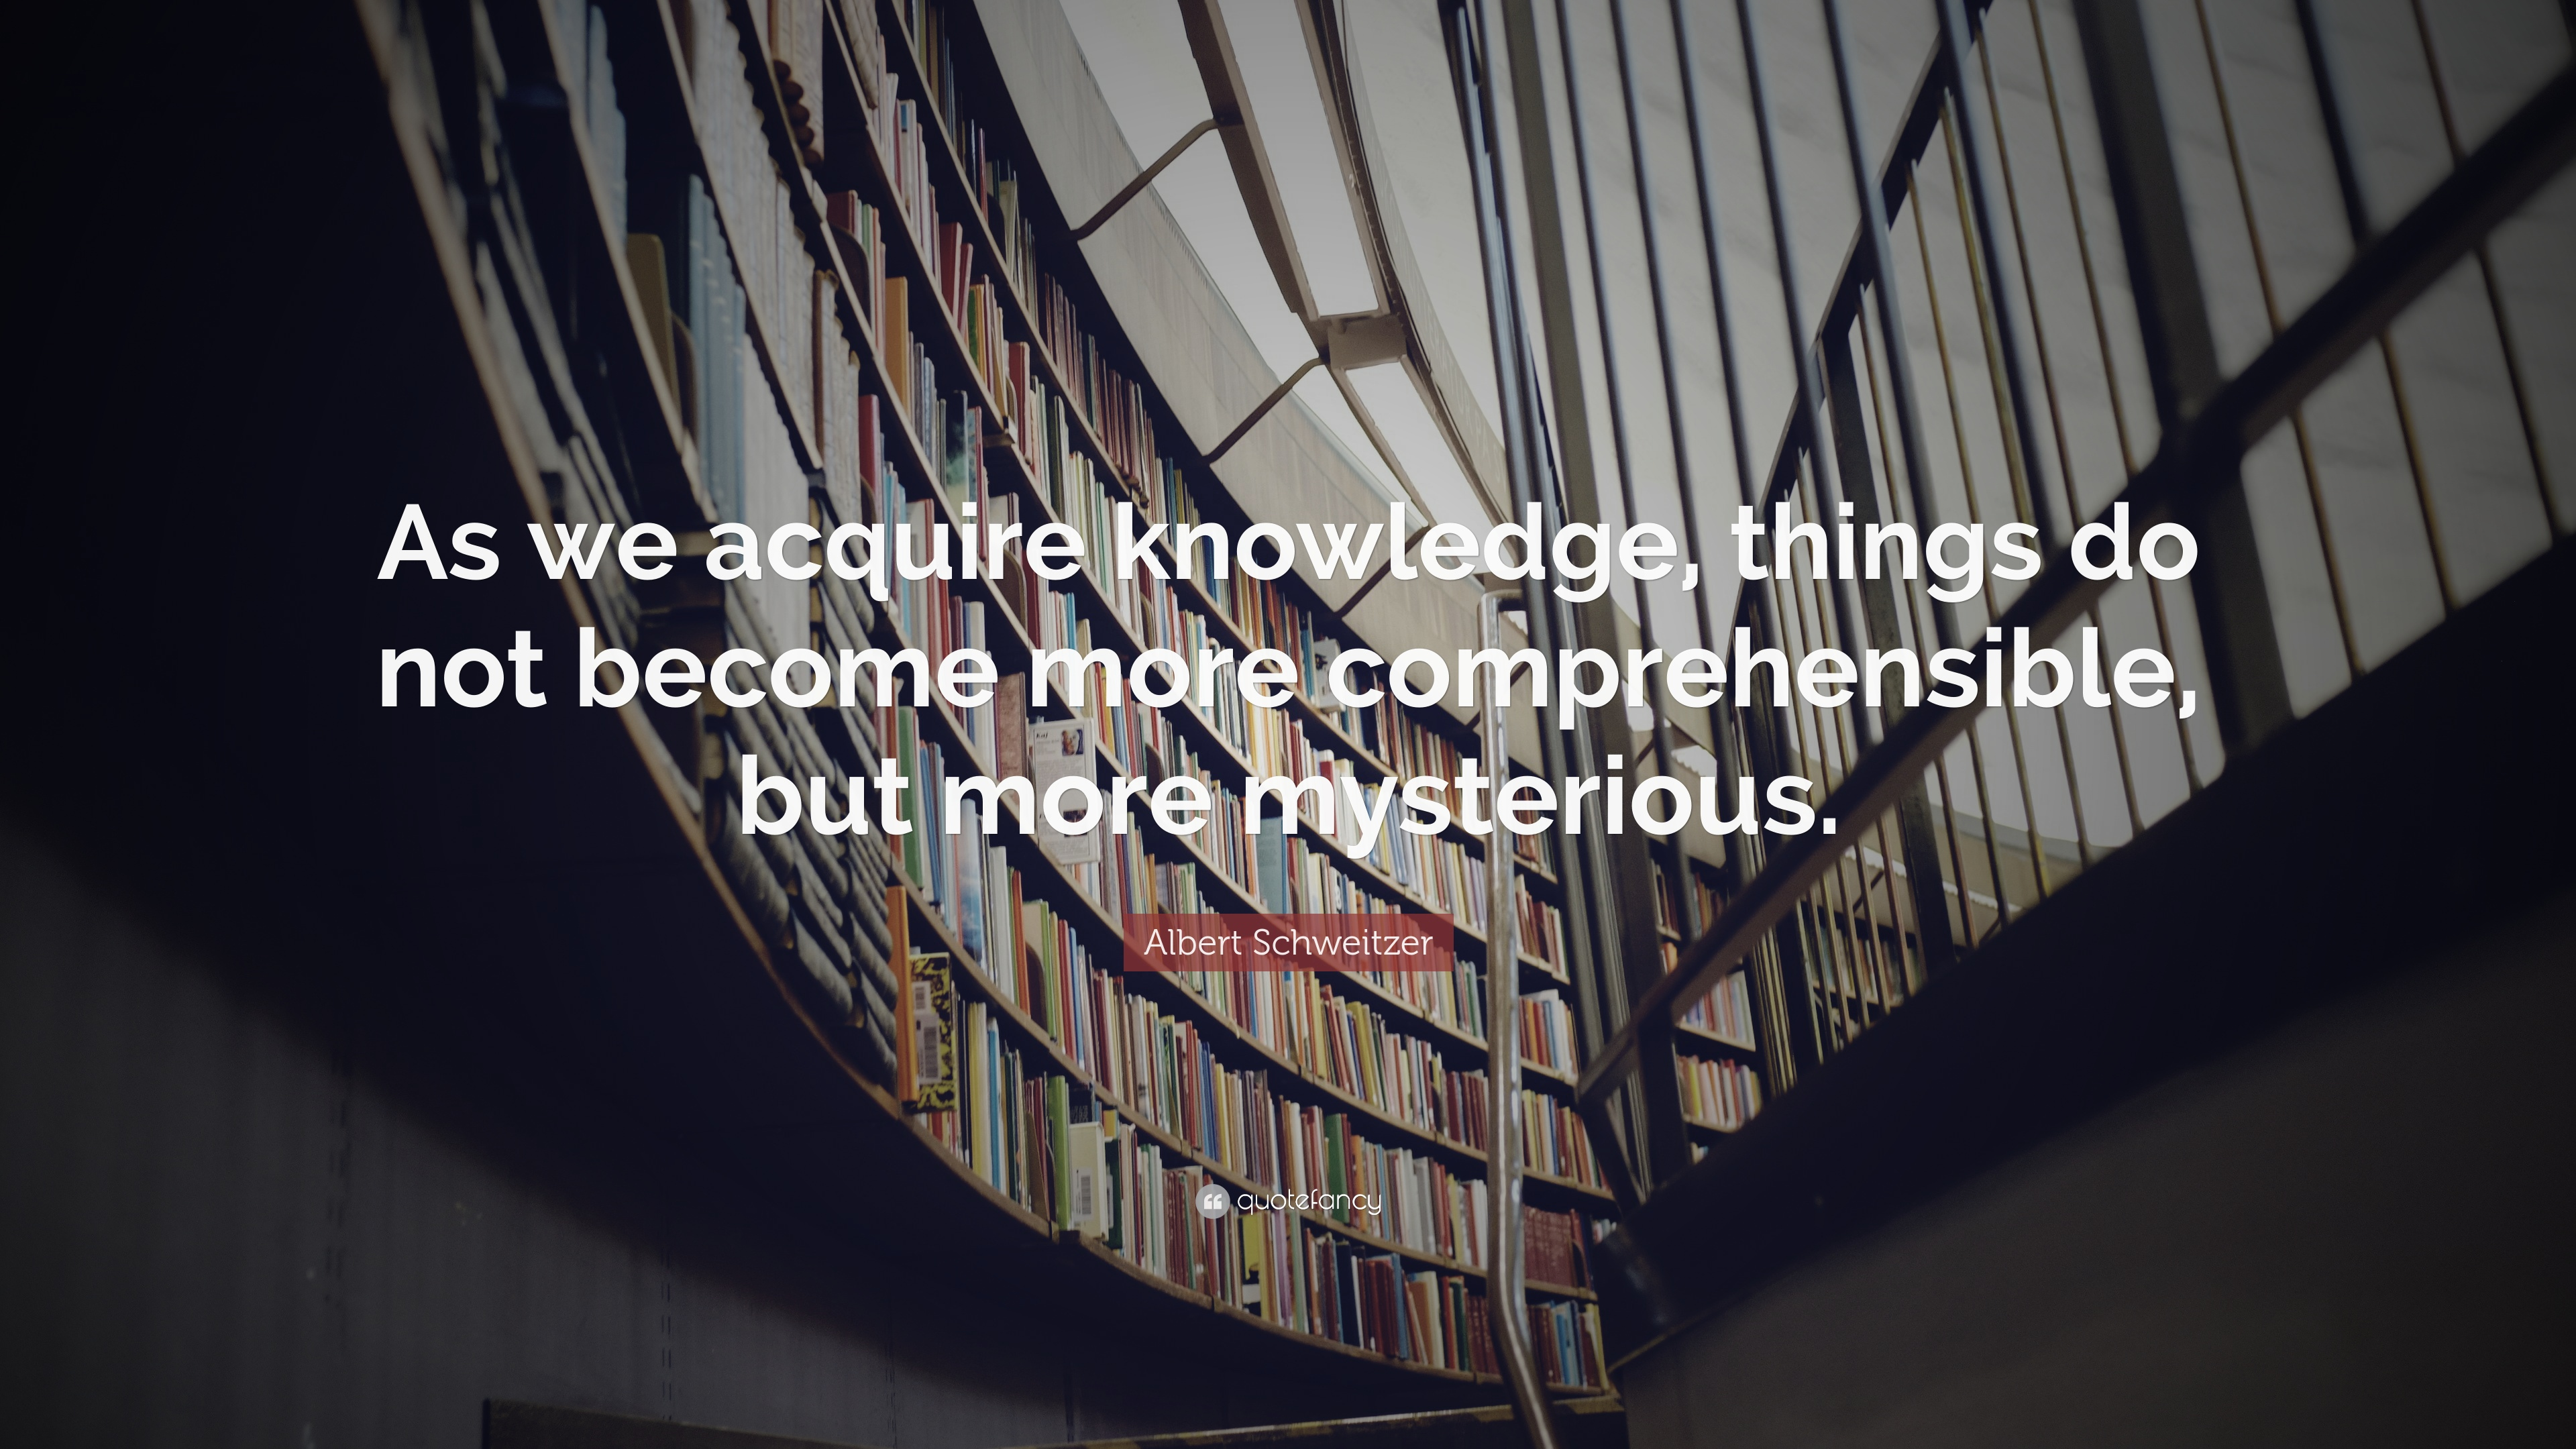 how we acquire knowledge